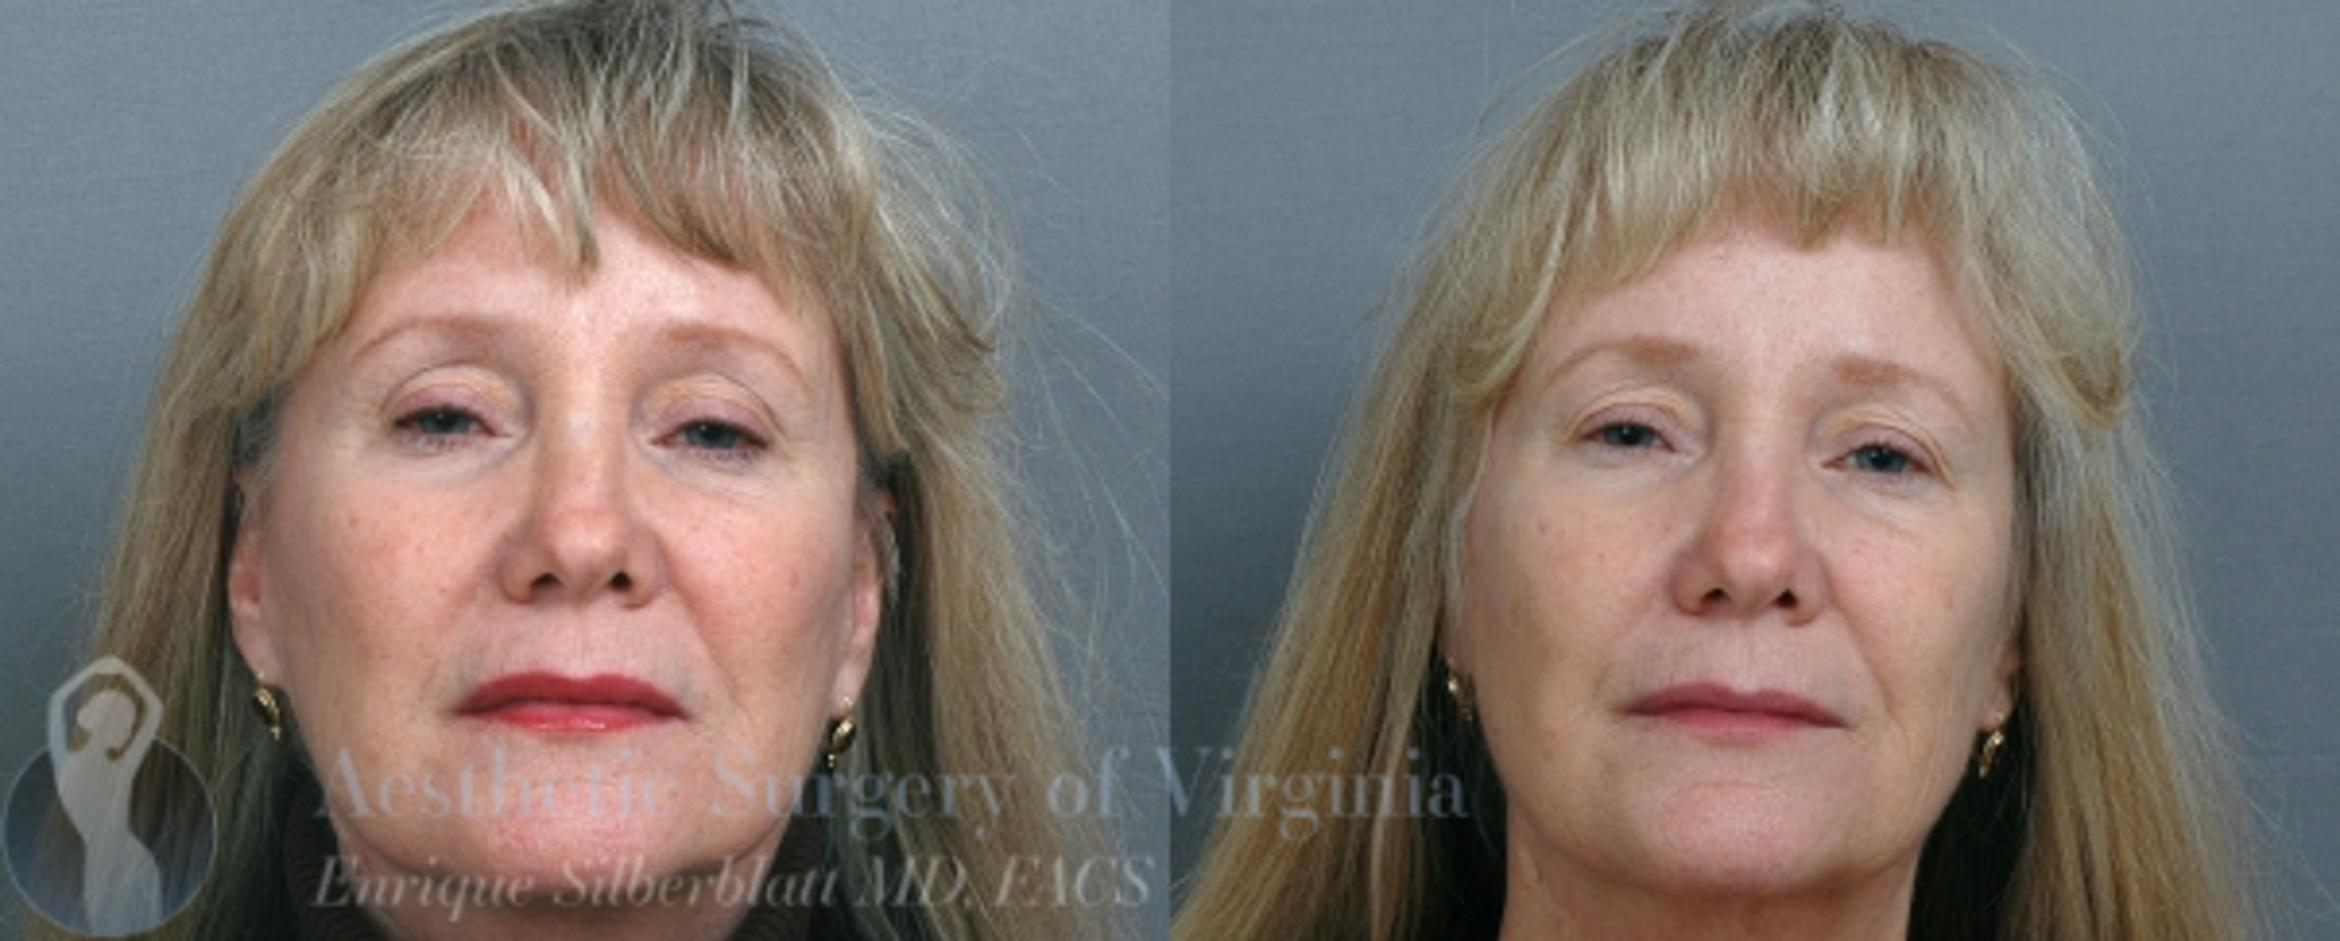 Mini Facelift Case 39 Before & After View #1 | Roanoke, VA | Aesthetic Surgery of Virginia: Enrique Silberblatt, MD